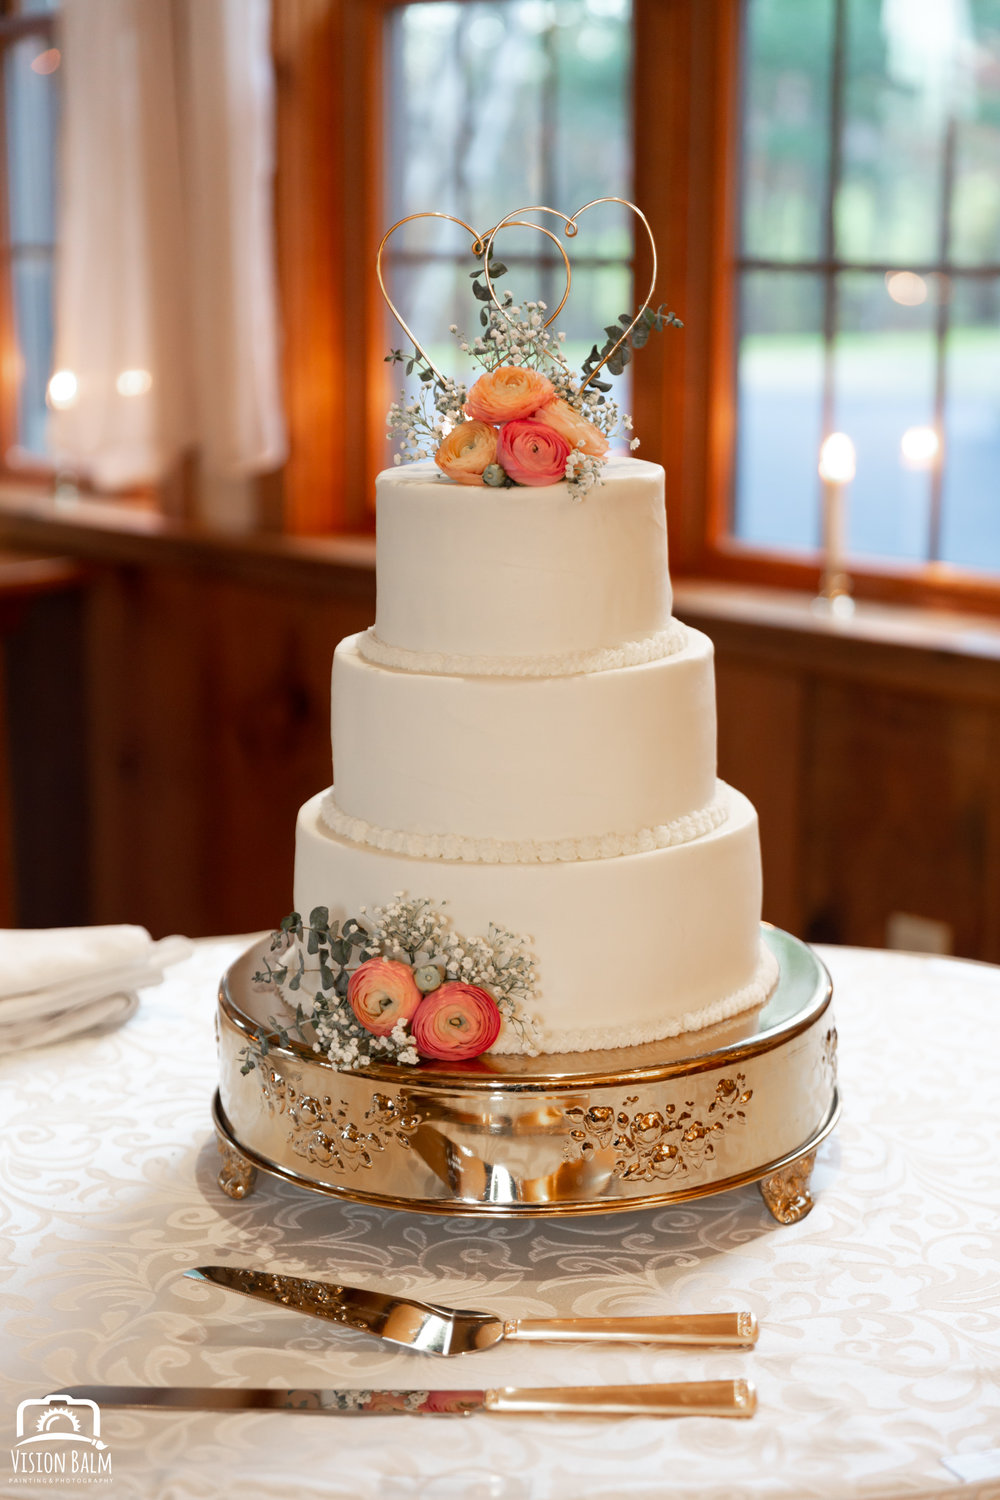 Wedding photo of wedding cake in the venue of Zuka's Hilltop Barn by Vision Balm in Charleston, SC.